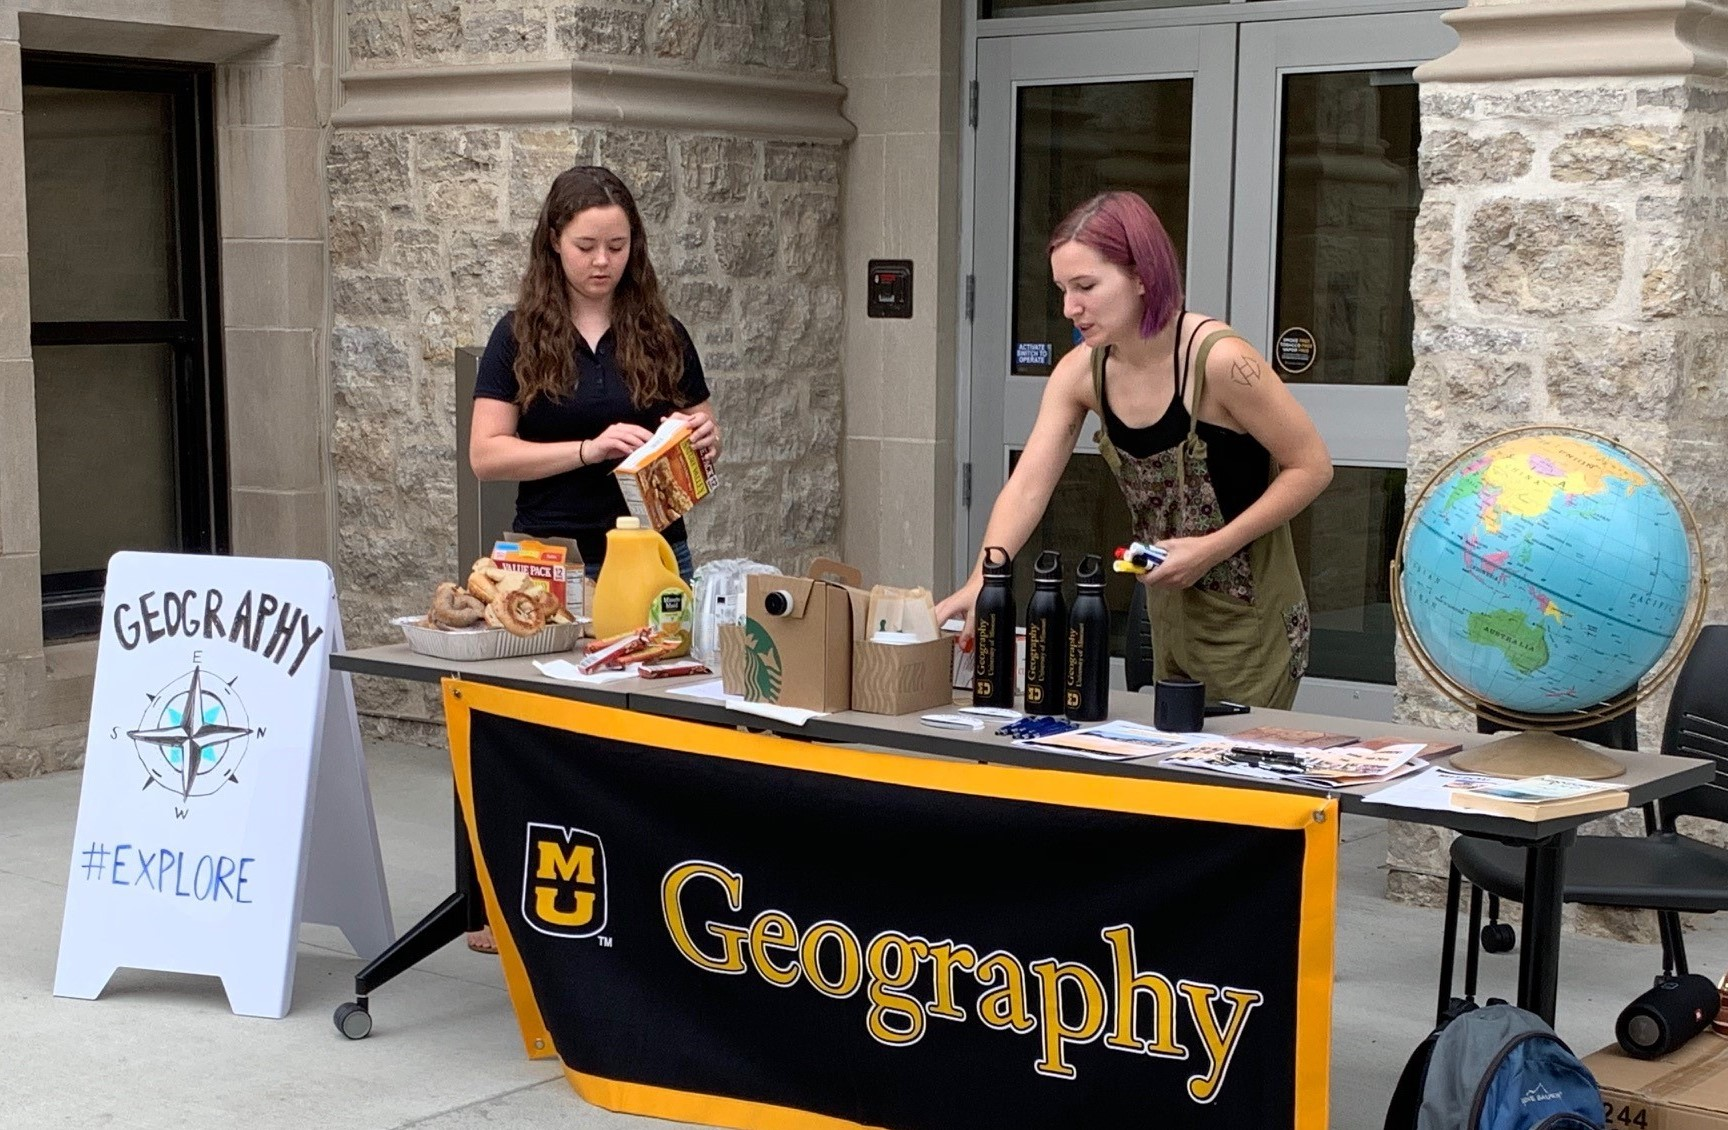 Students arrived early Friday morning to set up the geography booth for the 10 a.m. to 12 p.m. event.